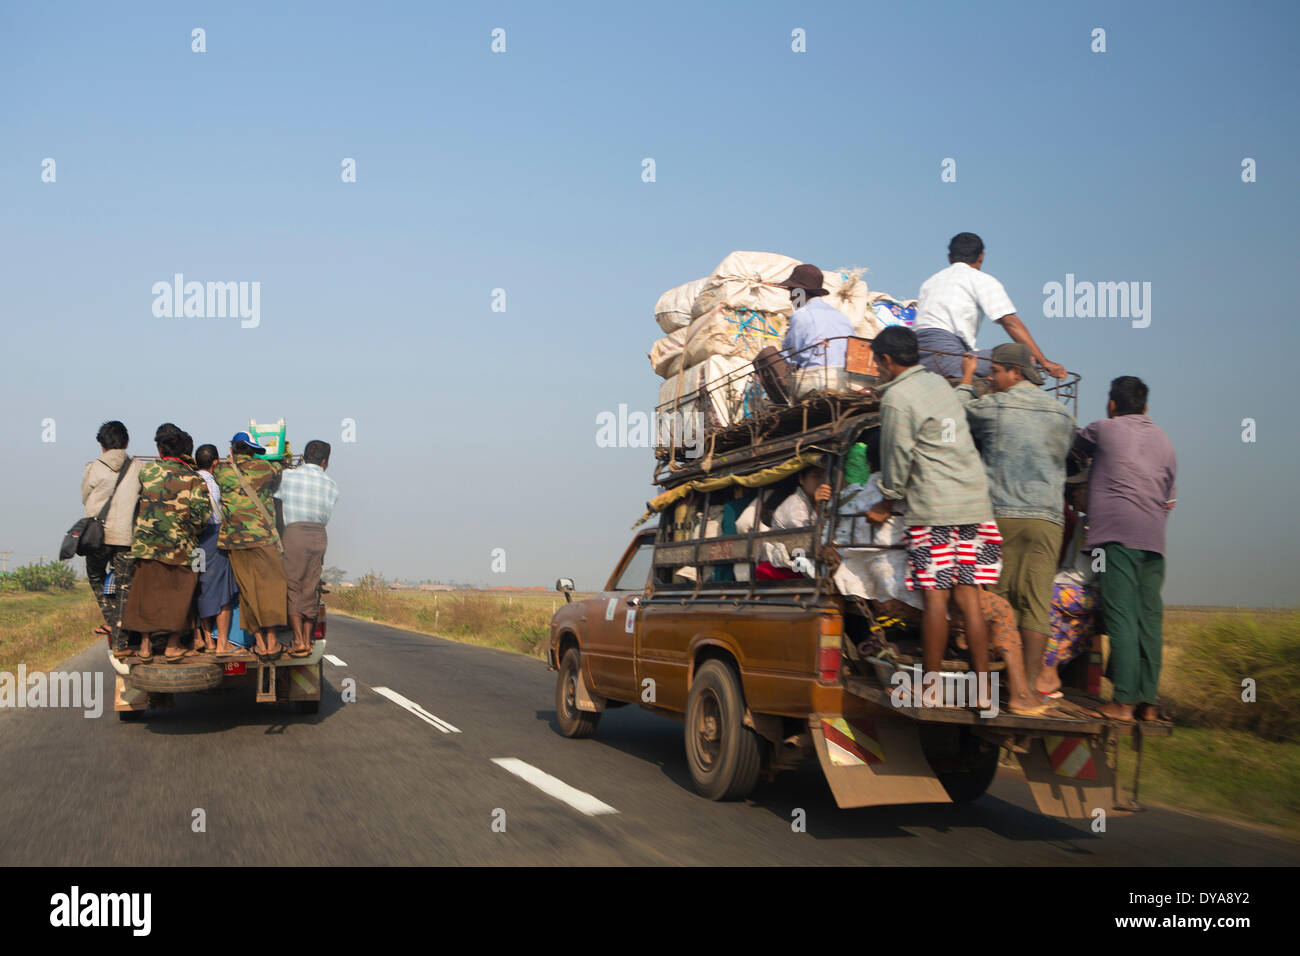 Local transport, Mon, Myanmar, Burma, Asia, dangerous, people, traffic, truck, overloaded - Stock Image